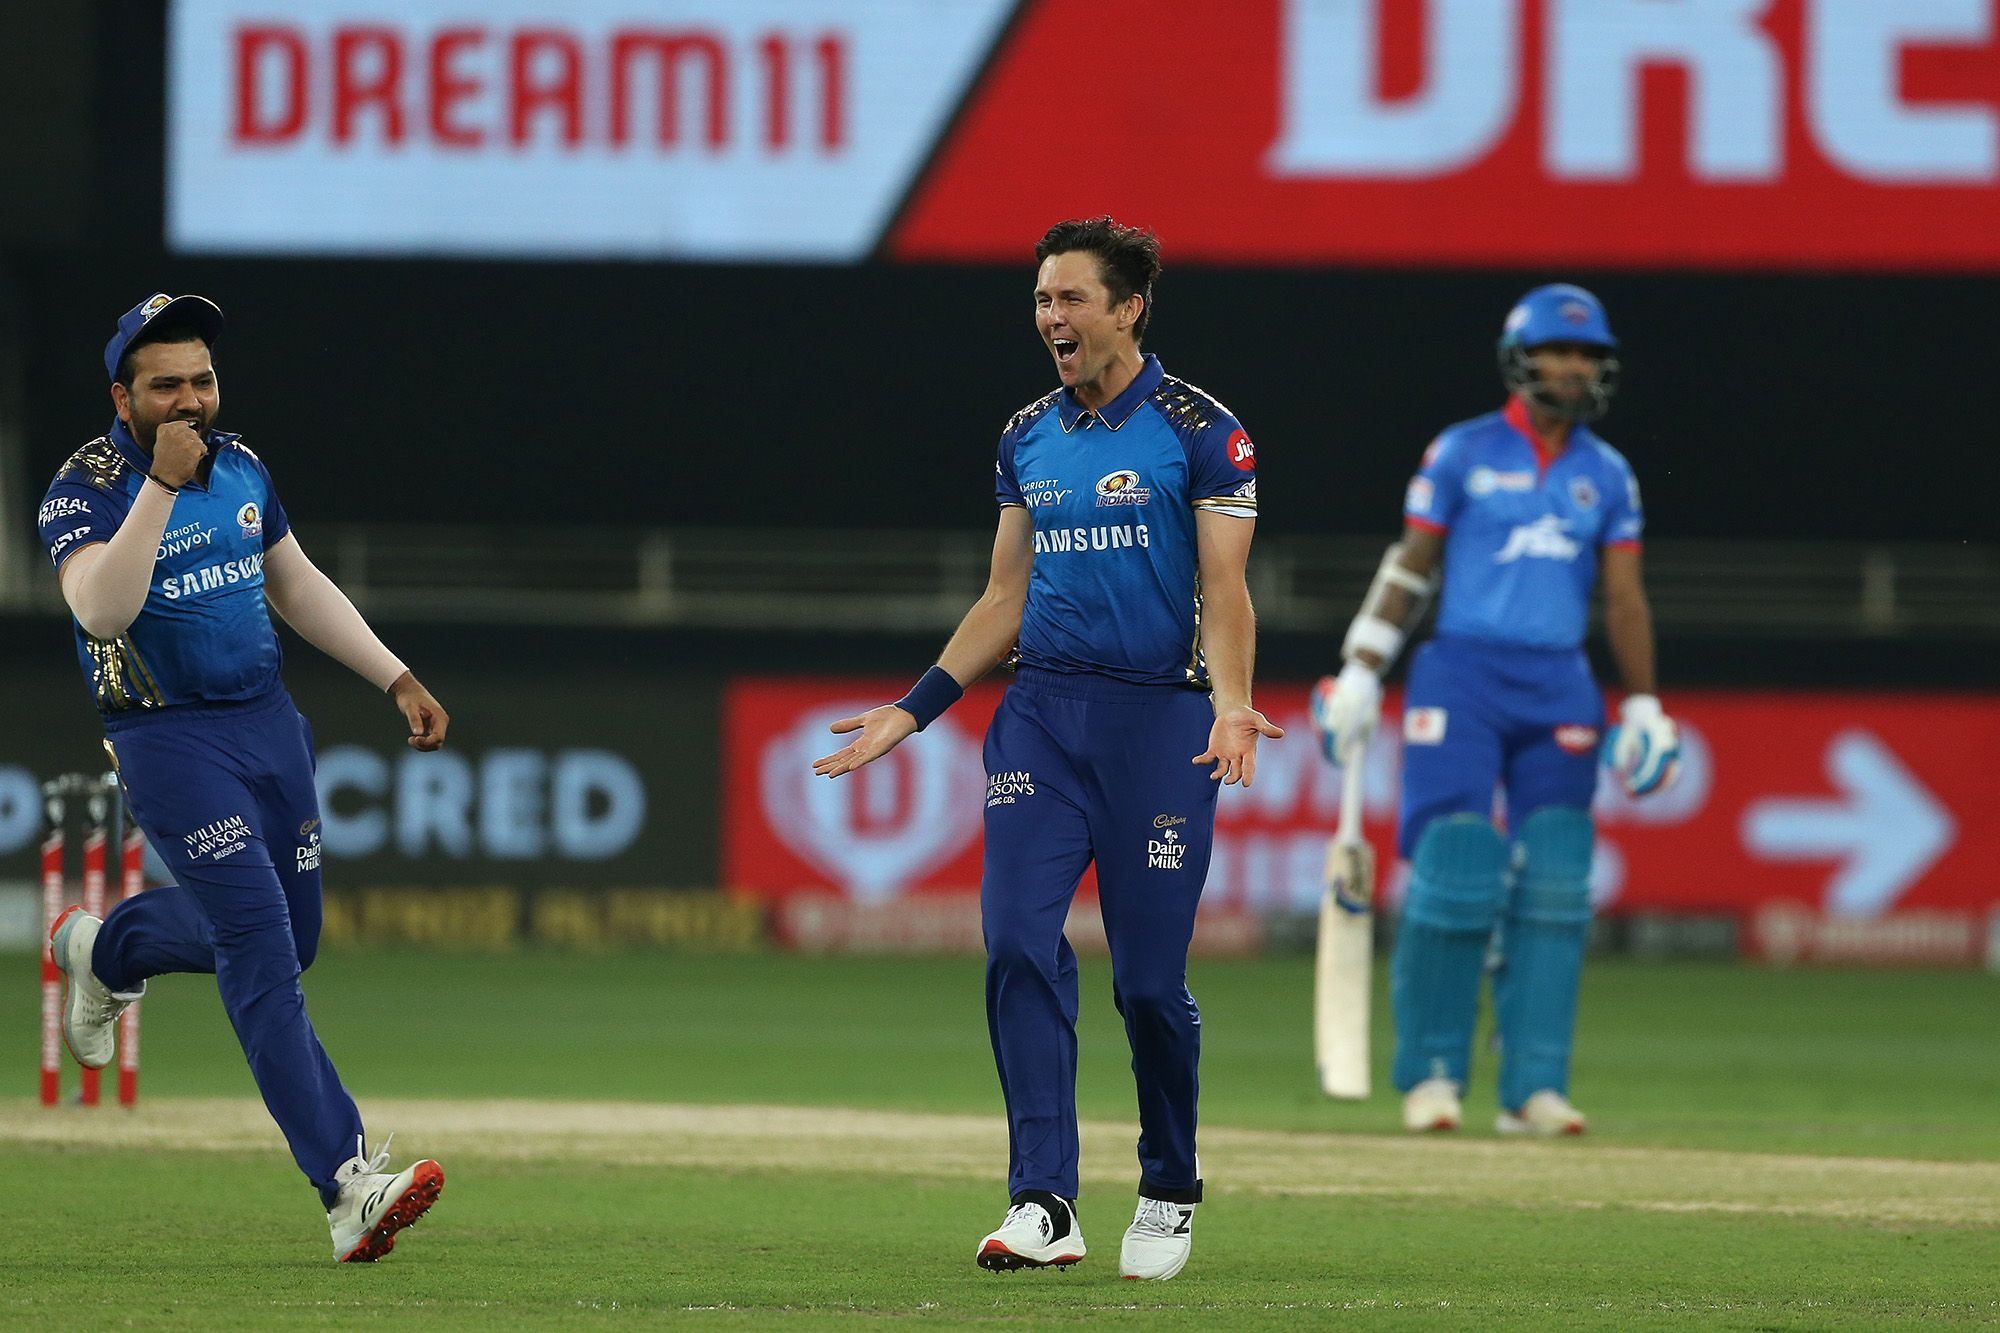 Man of the Match Trent Boult took 3 wickets against DC in the final of IPL 2020. (Photo - BCCI / IPL)